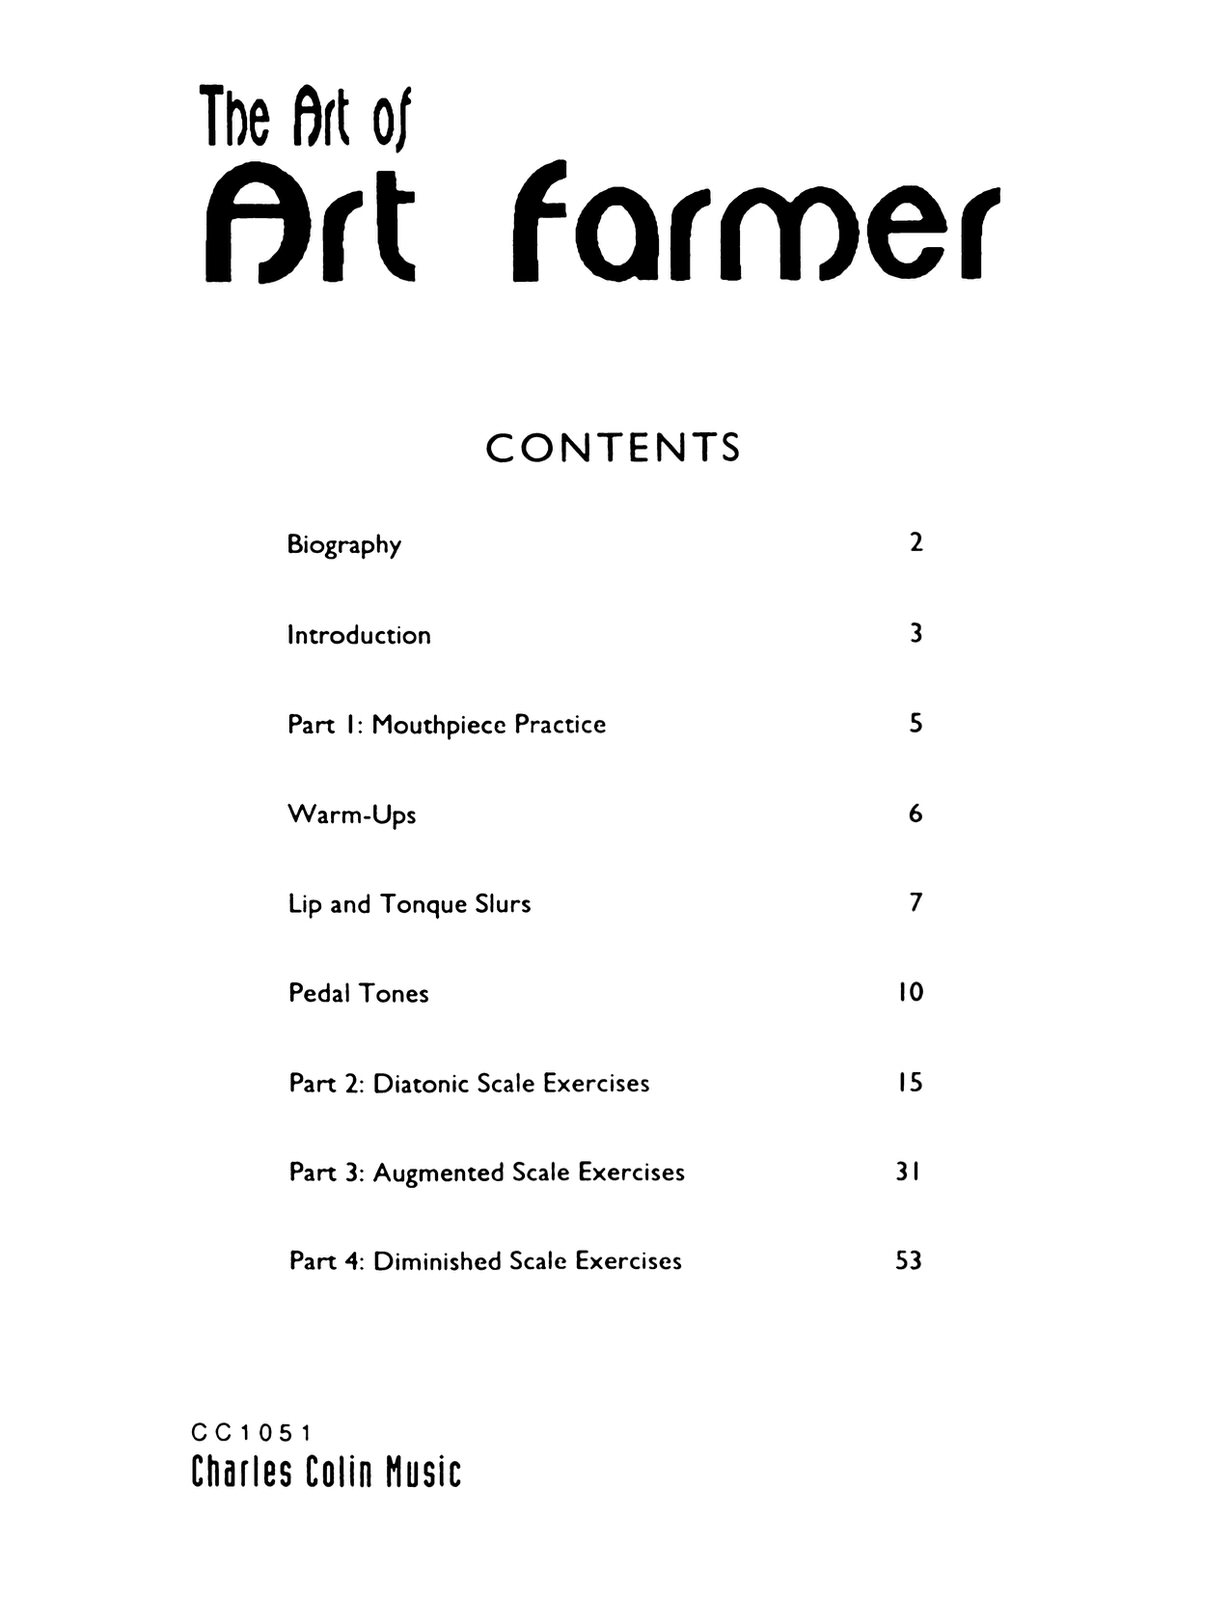 Farmer, The Art of Art Farmer 2